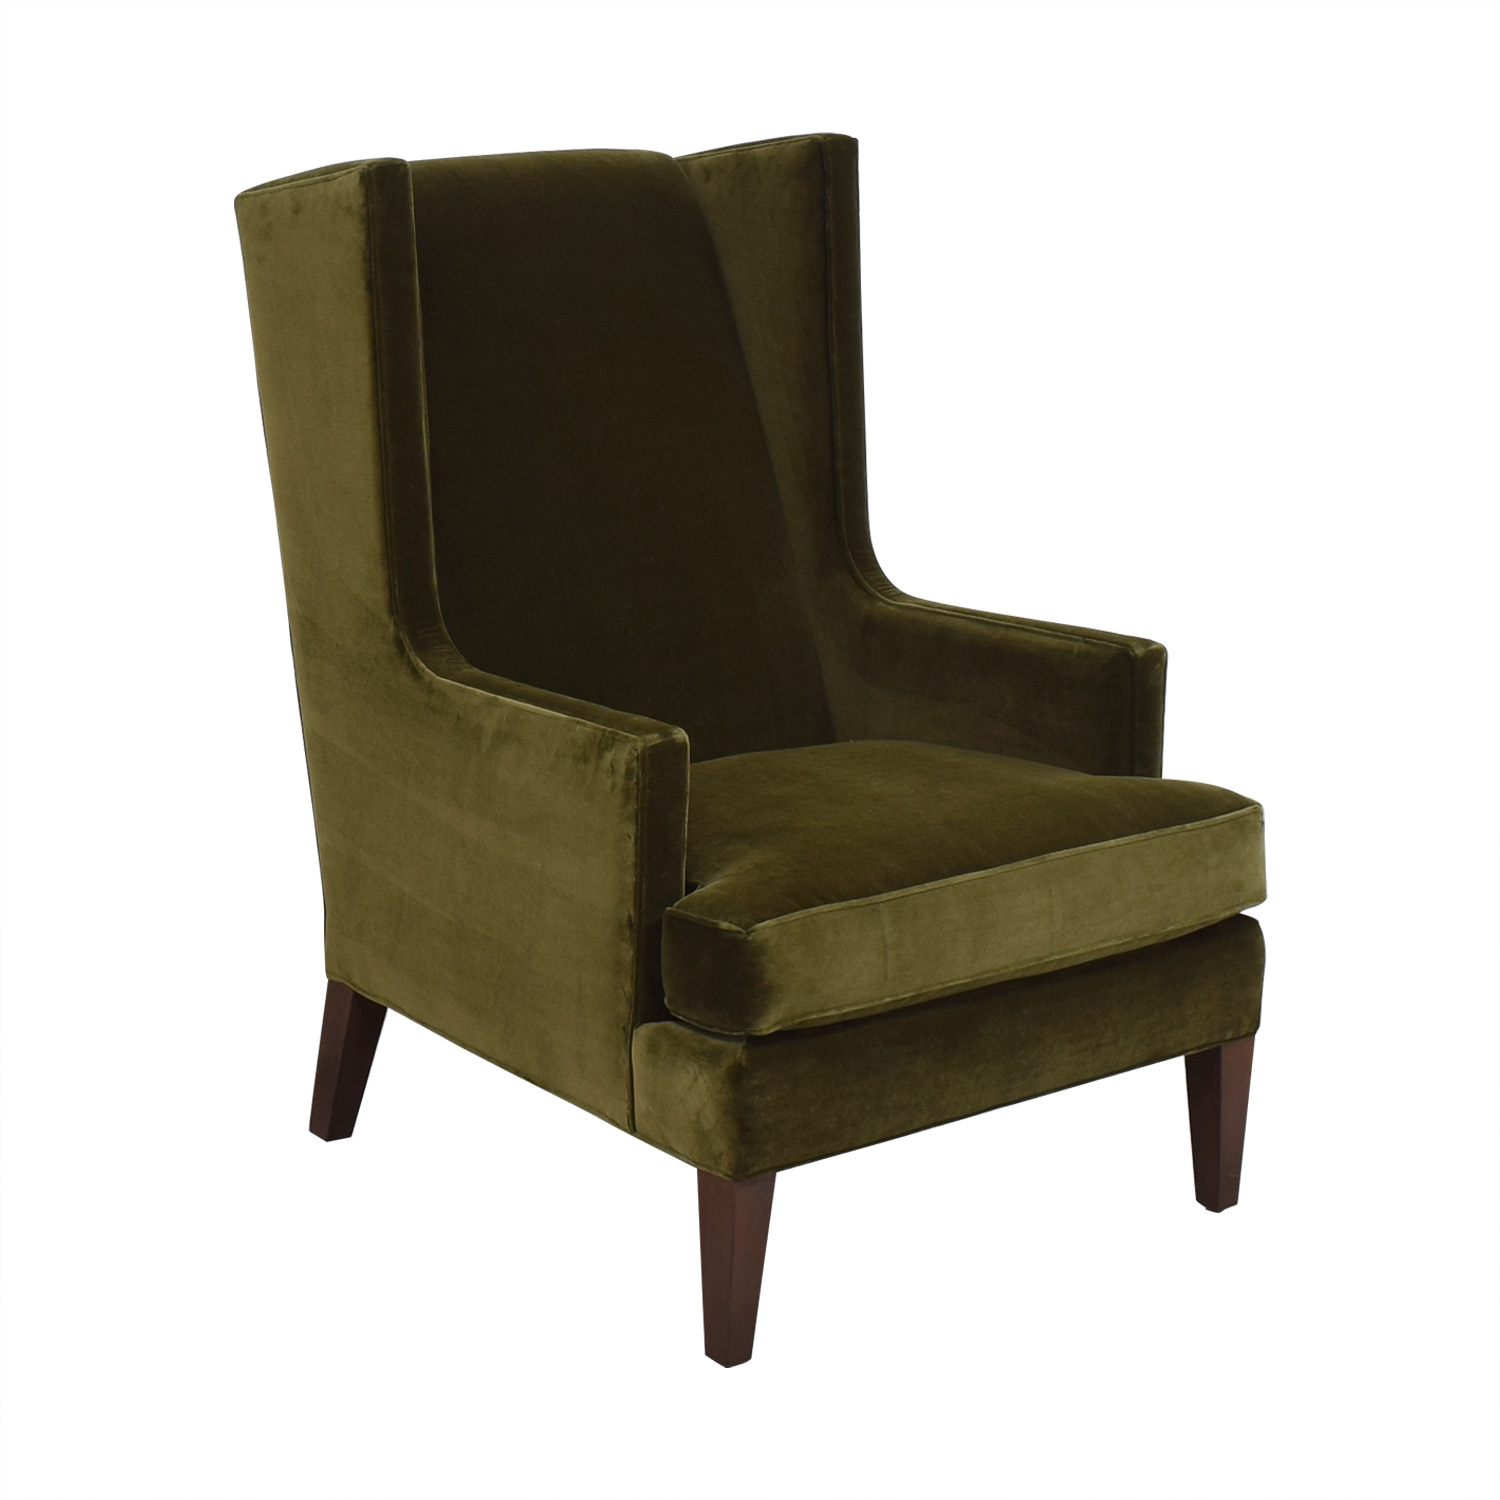 Crate & Barrel Crate & Barrel Luxe Wingback Chair pa